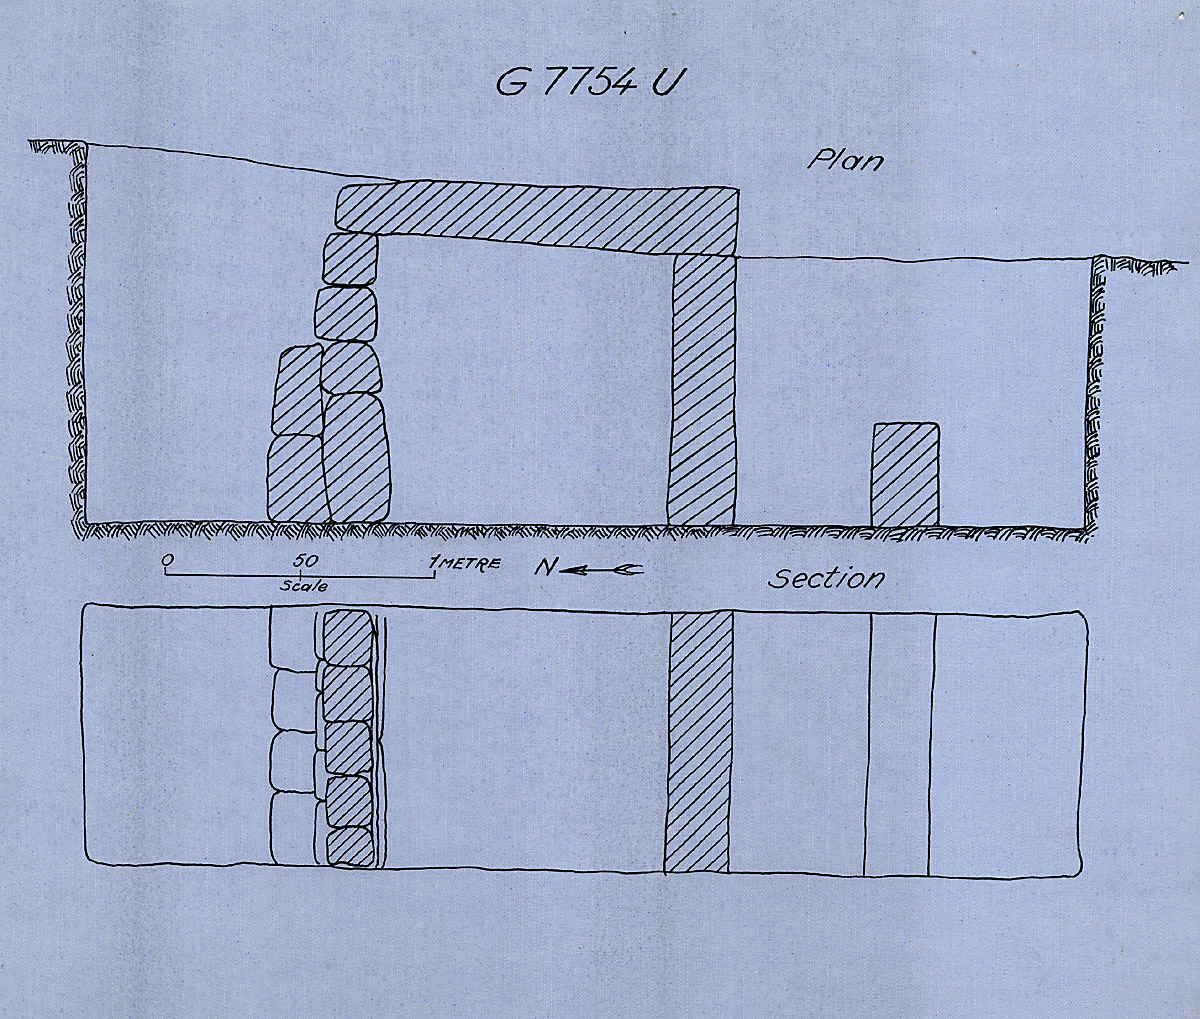 Maps and plans: G 7754, Shaft U